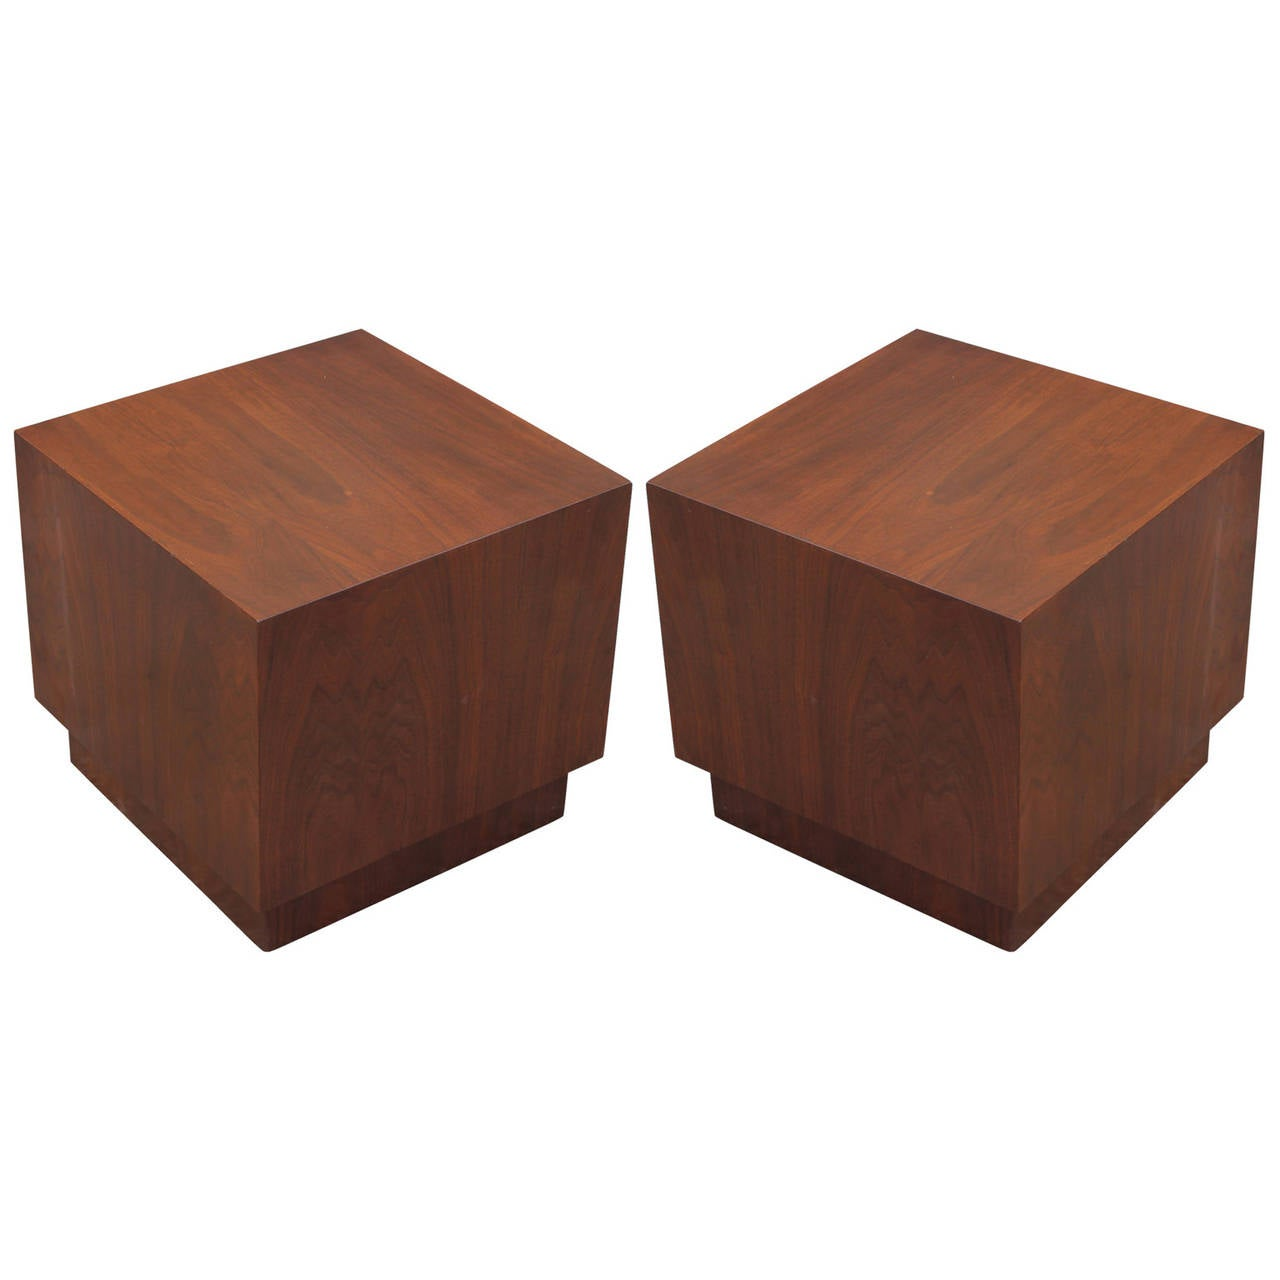 Pair of Mid Century Modern Minimalist Walnut Cube Side